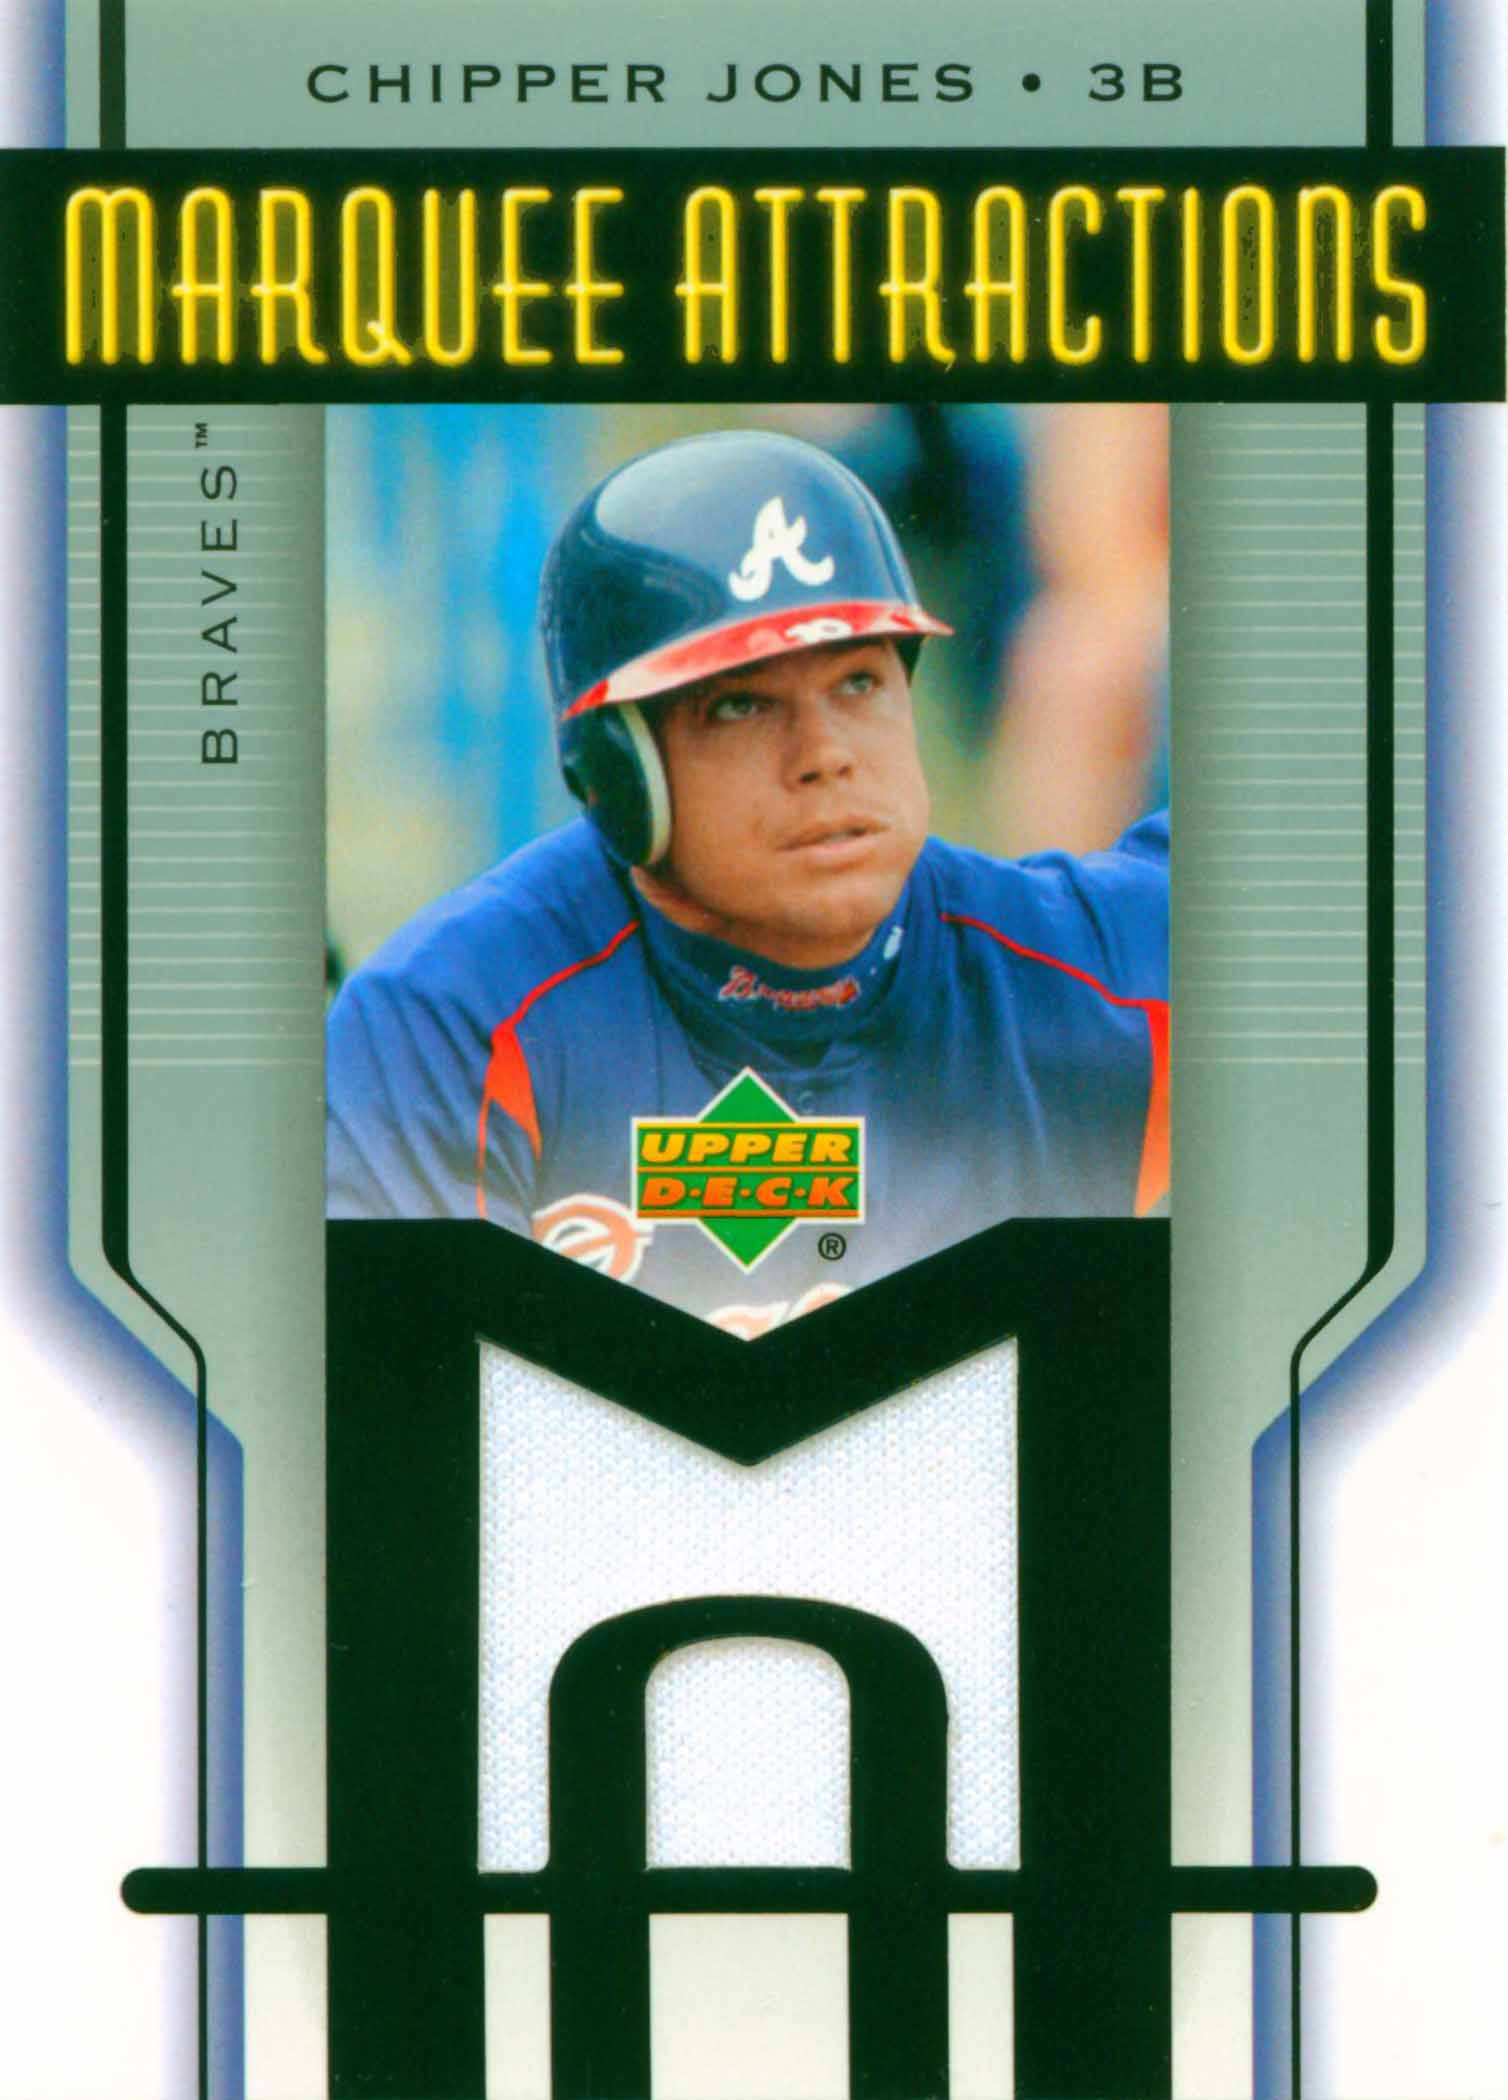 2005 Upper Deck Marquee Attractions Jersey